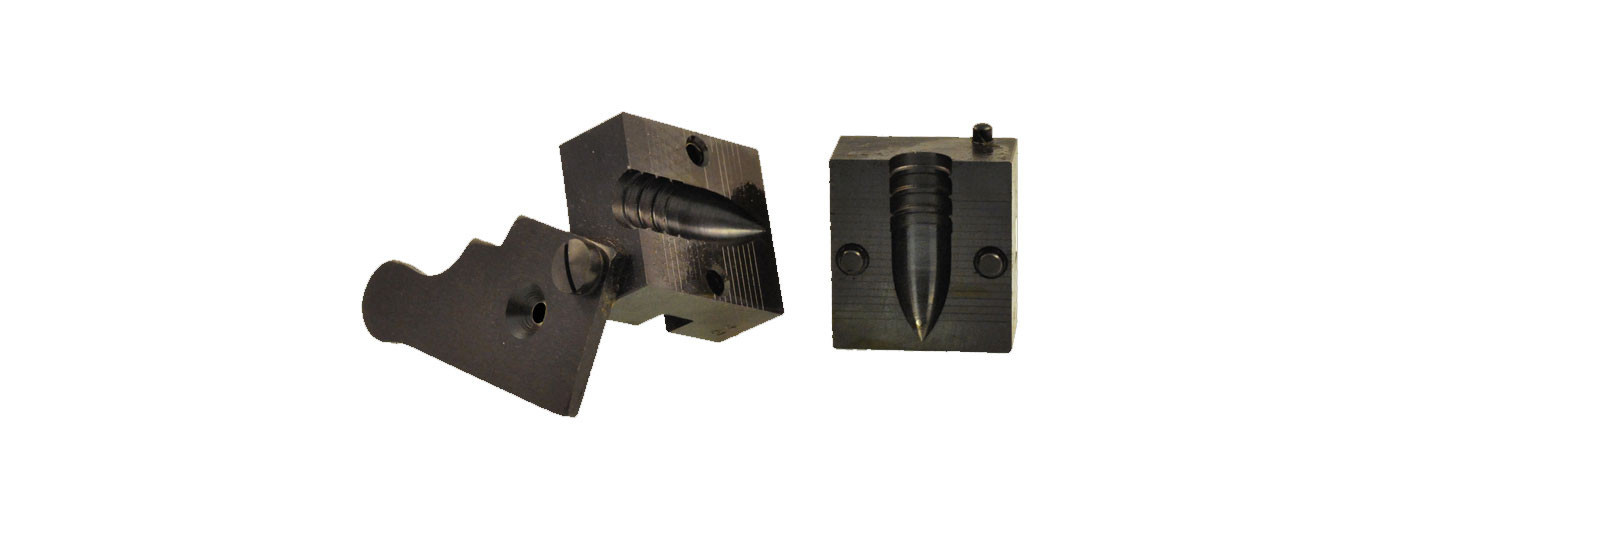 Bullet mould block with 1 cavity - minie' bullet